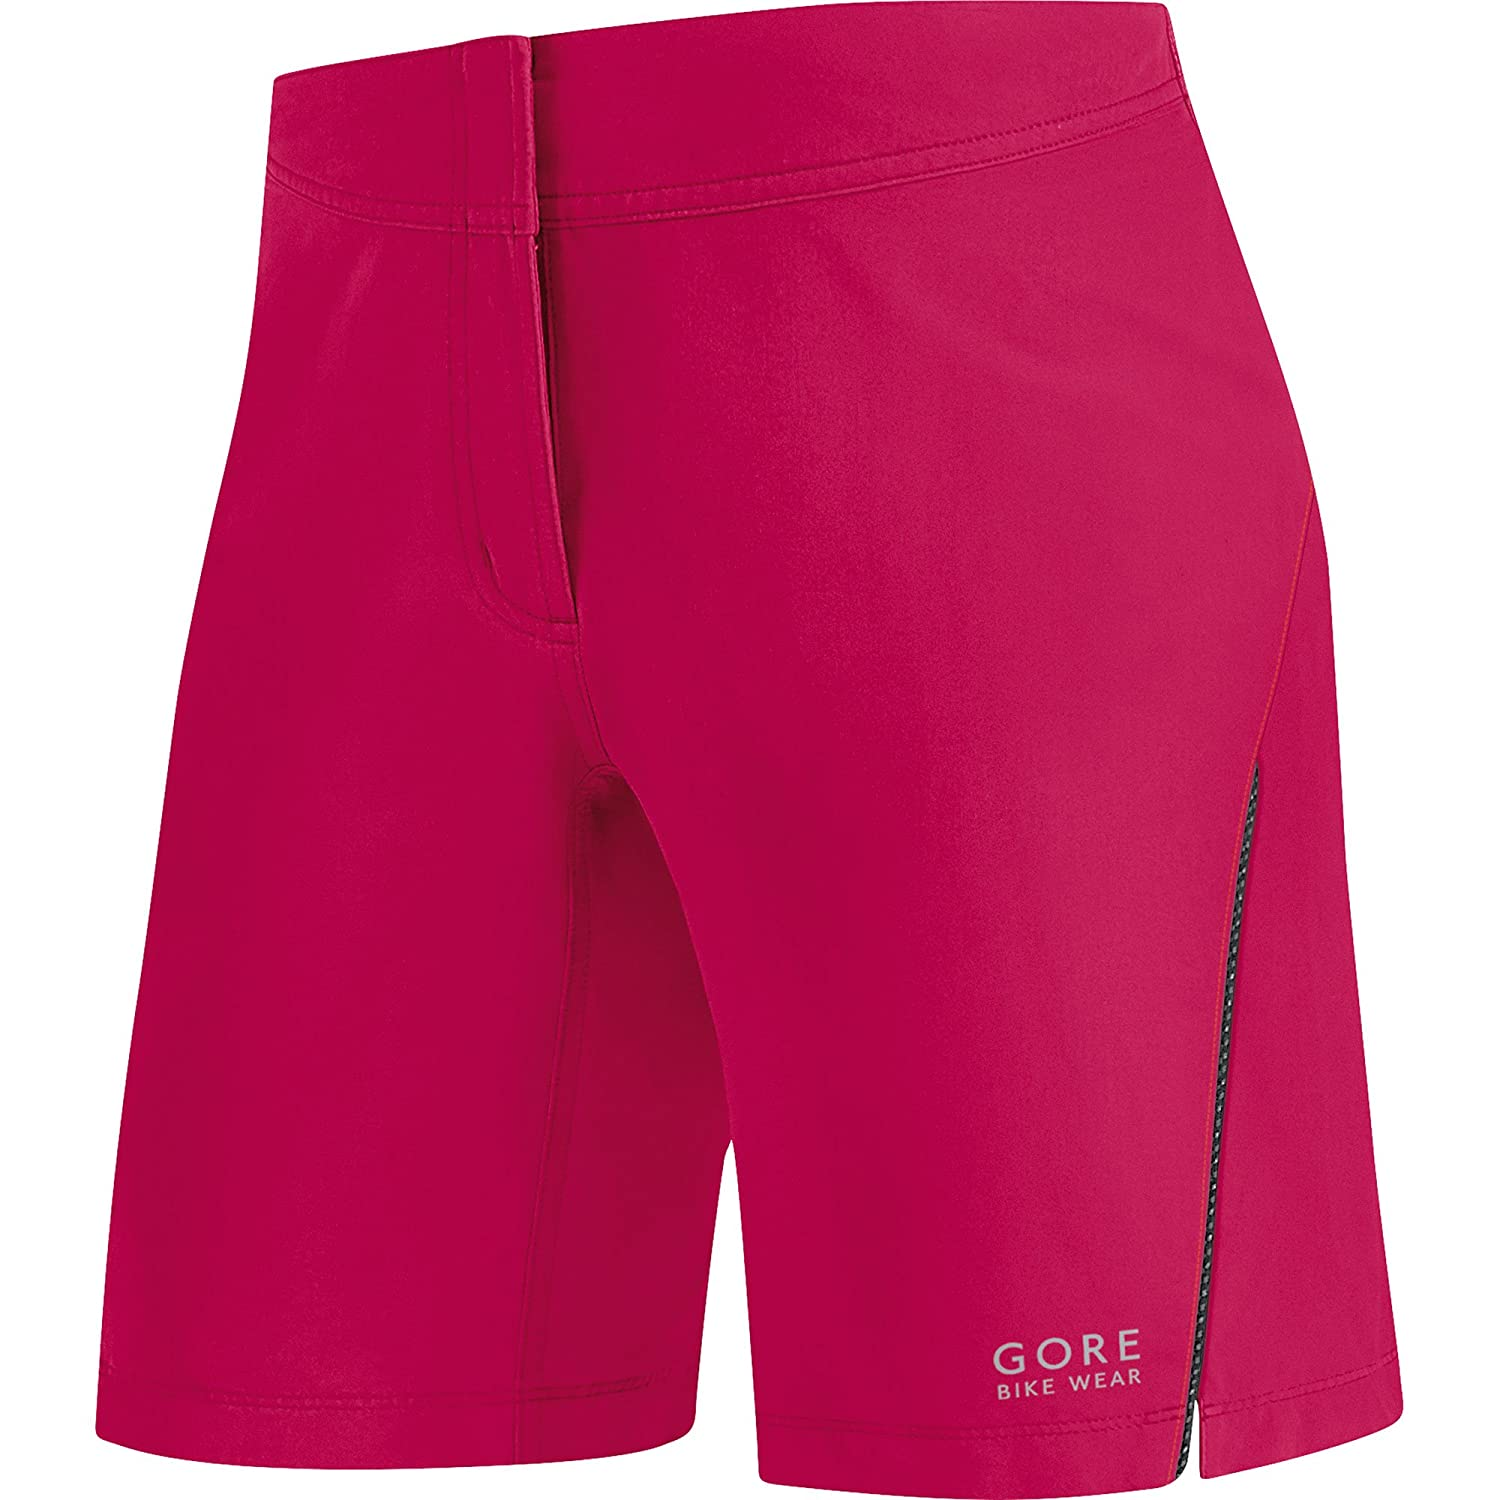 GORE WEAR Damen Enganliegende Hose Element Shorts Lady 4+ Tights 3 4+ Lady 7ba6ab